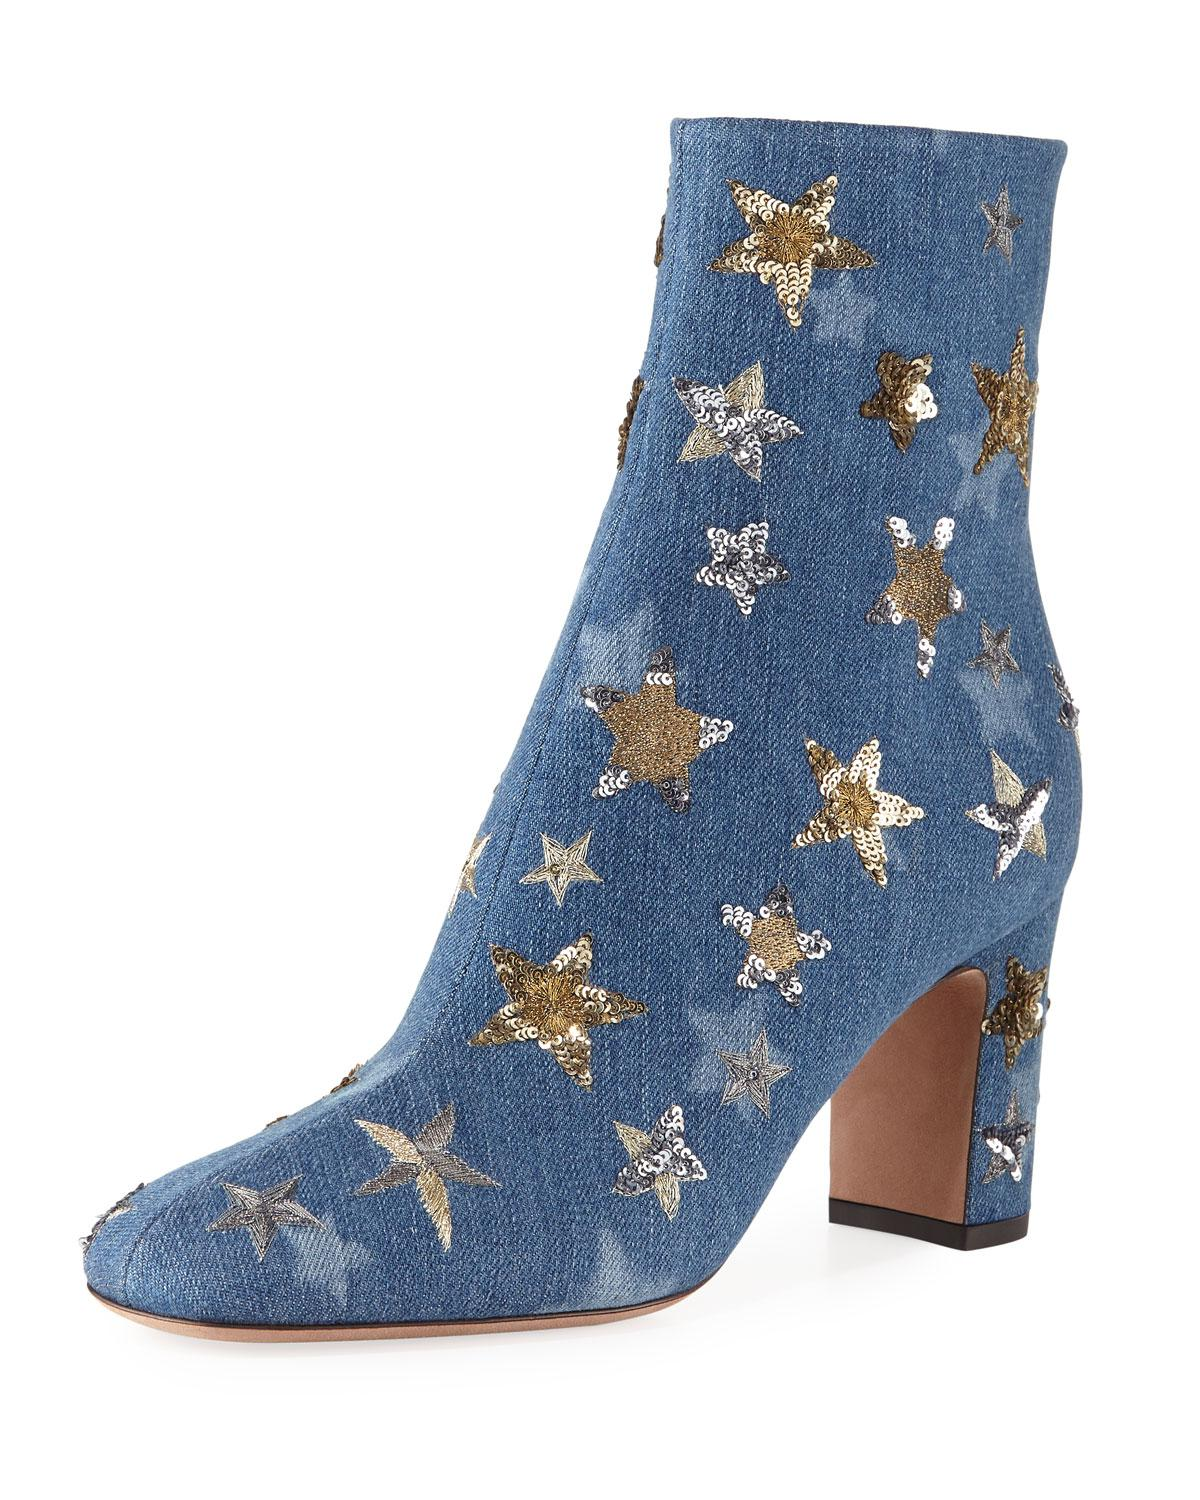 82c305d839d Lyst - Valentino Embellished Denim Star Booties in Blue